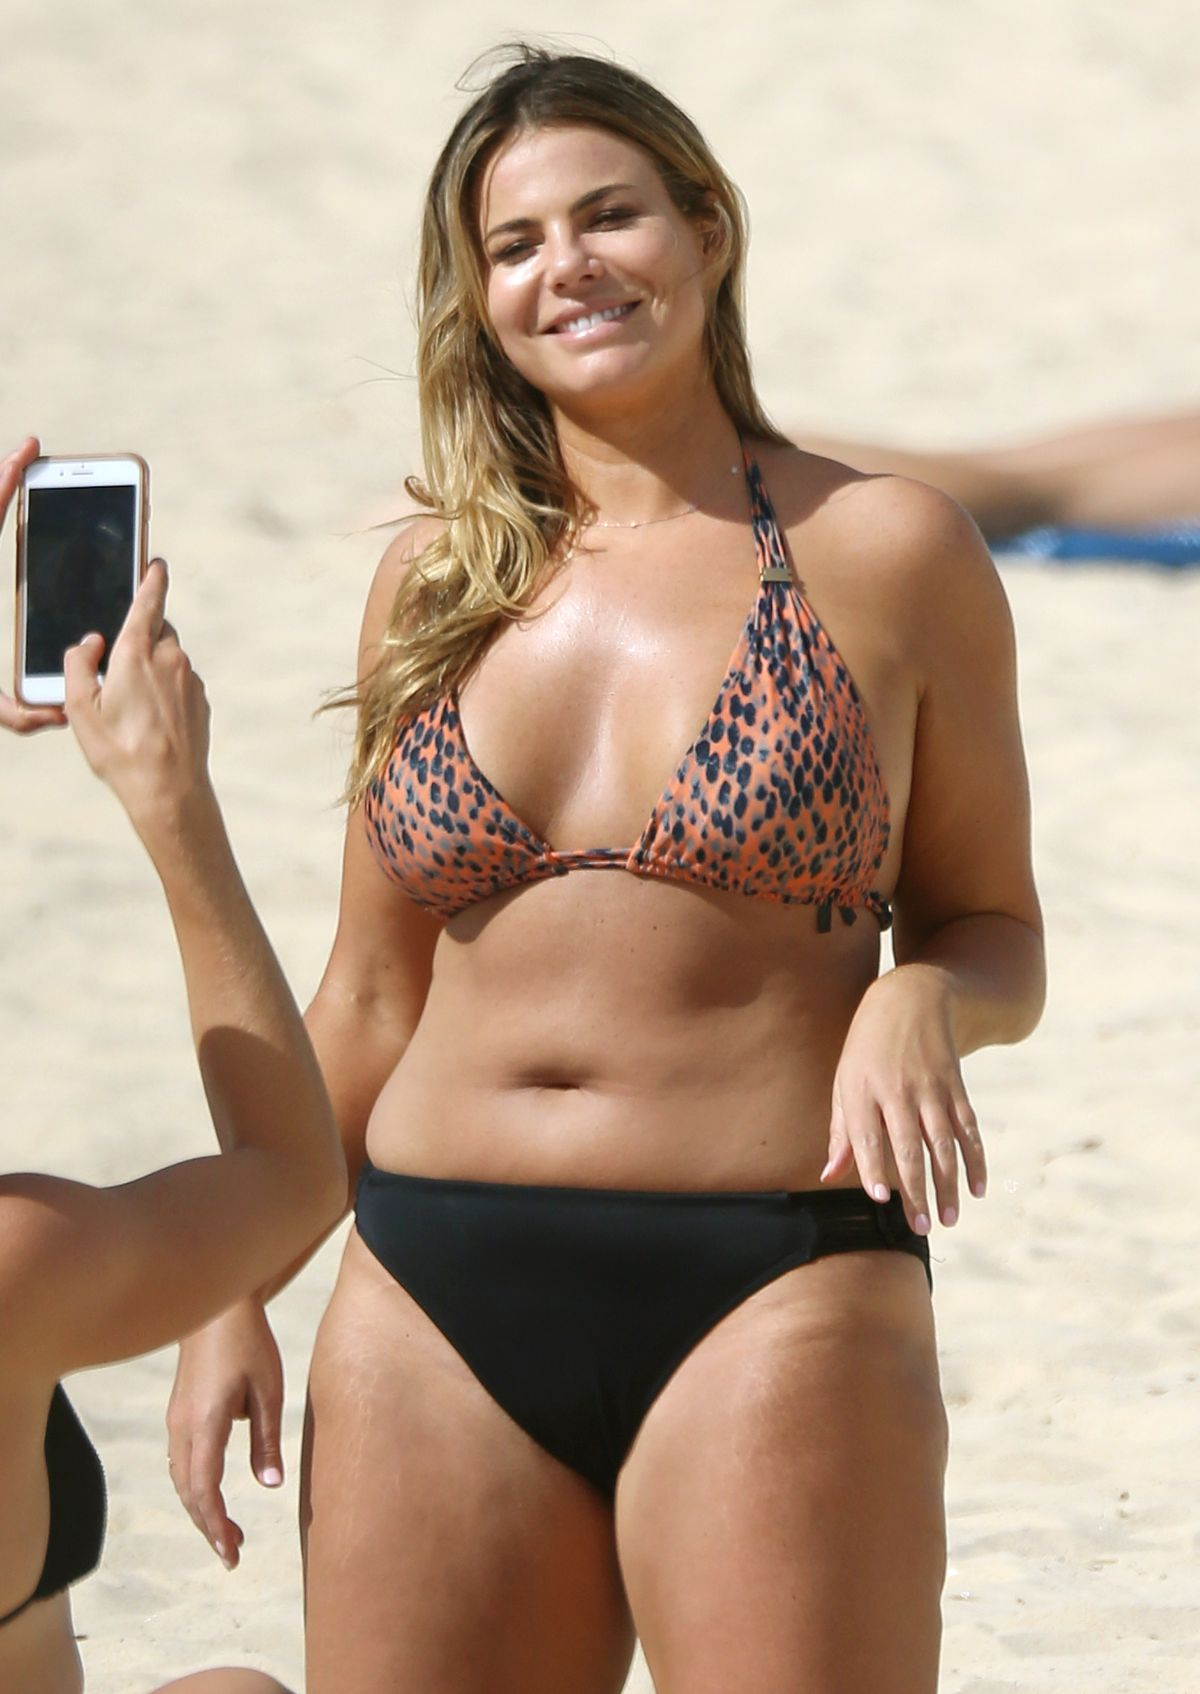 Bikini Fiona Falkiner nude (96 foto and video), Sexy, Fappening, Selfie, braless 2017